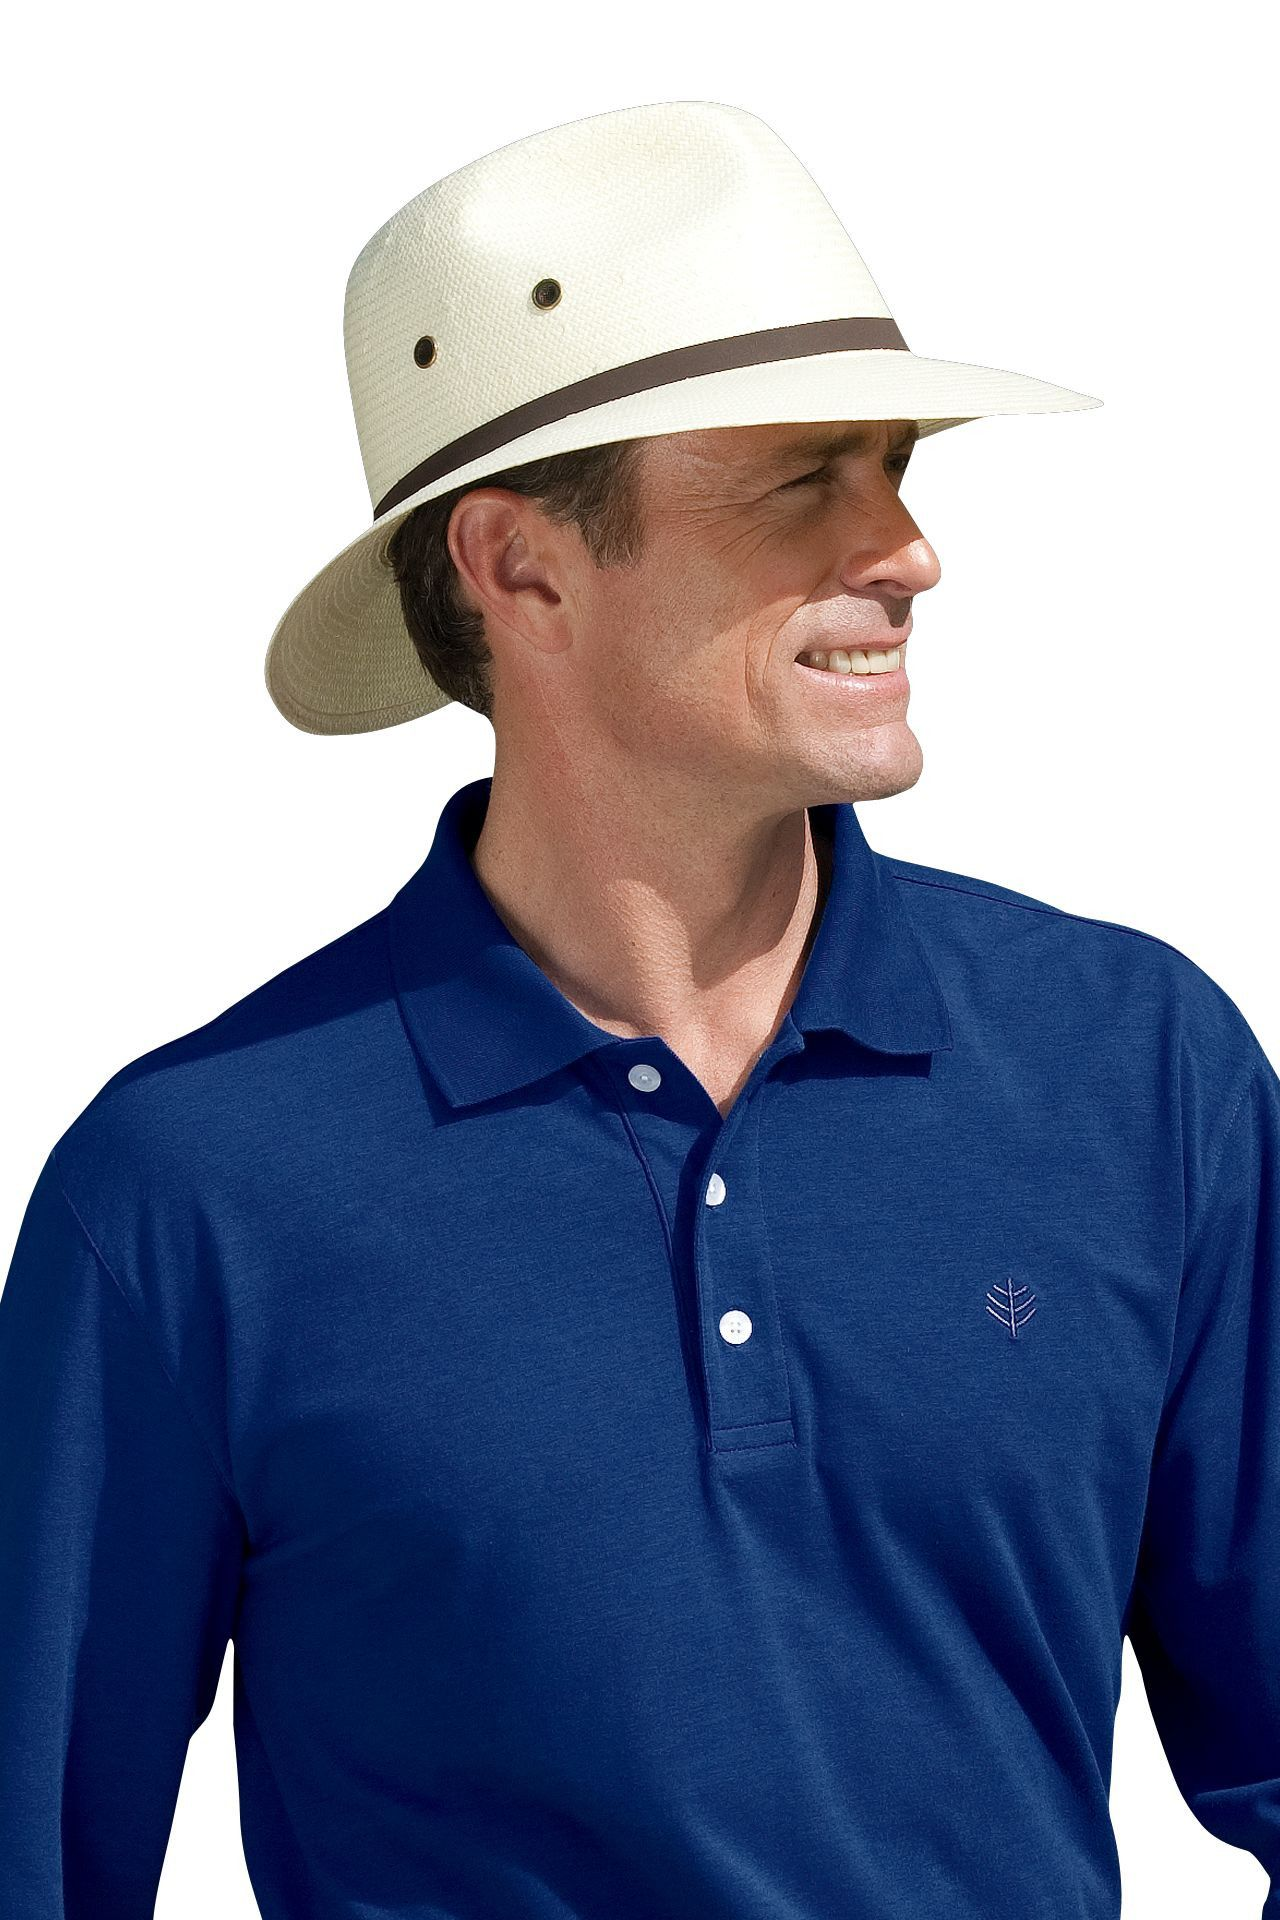 Not all men s golf hats offer style and UV protection rolled into one. Our  Coolibar Fairway Golf Hat is a classic choice for shading the sensitive  skin on ... d489e318d3b